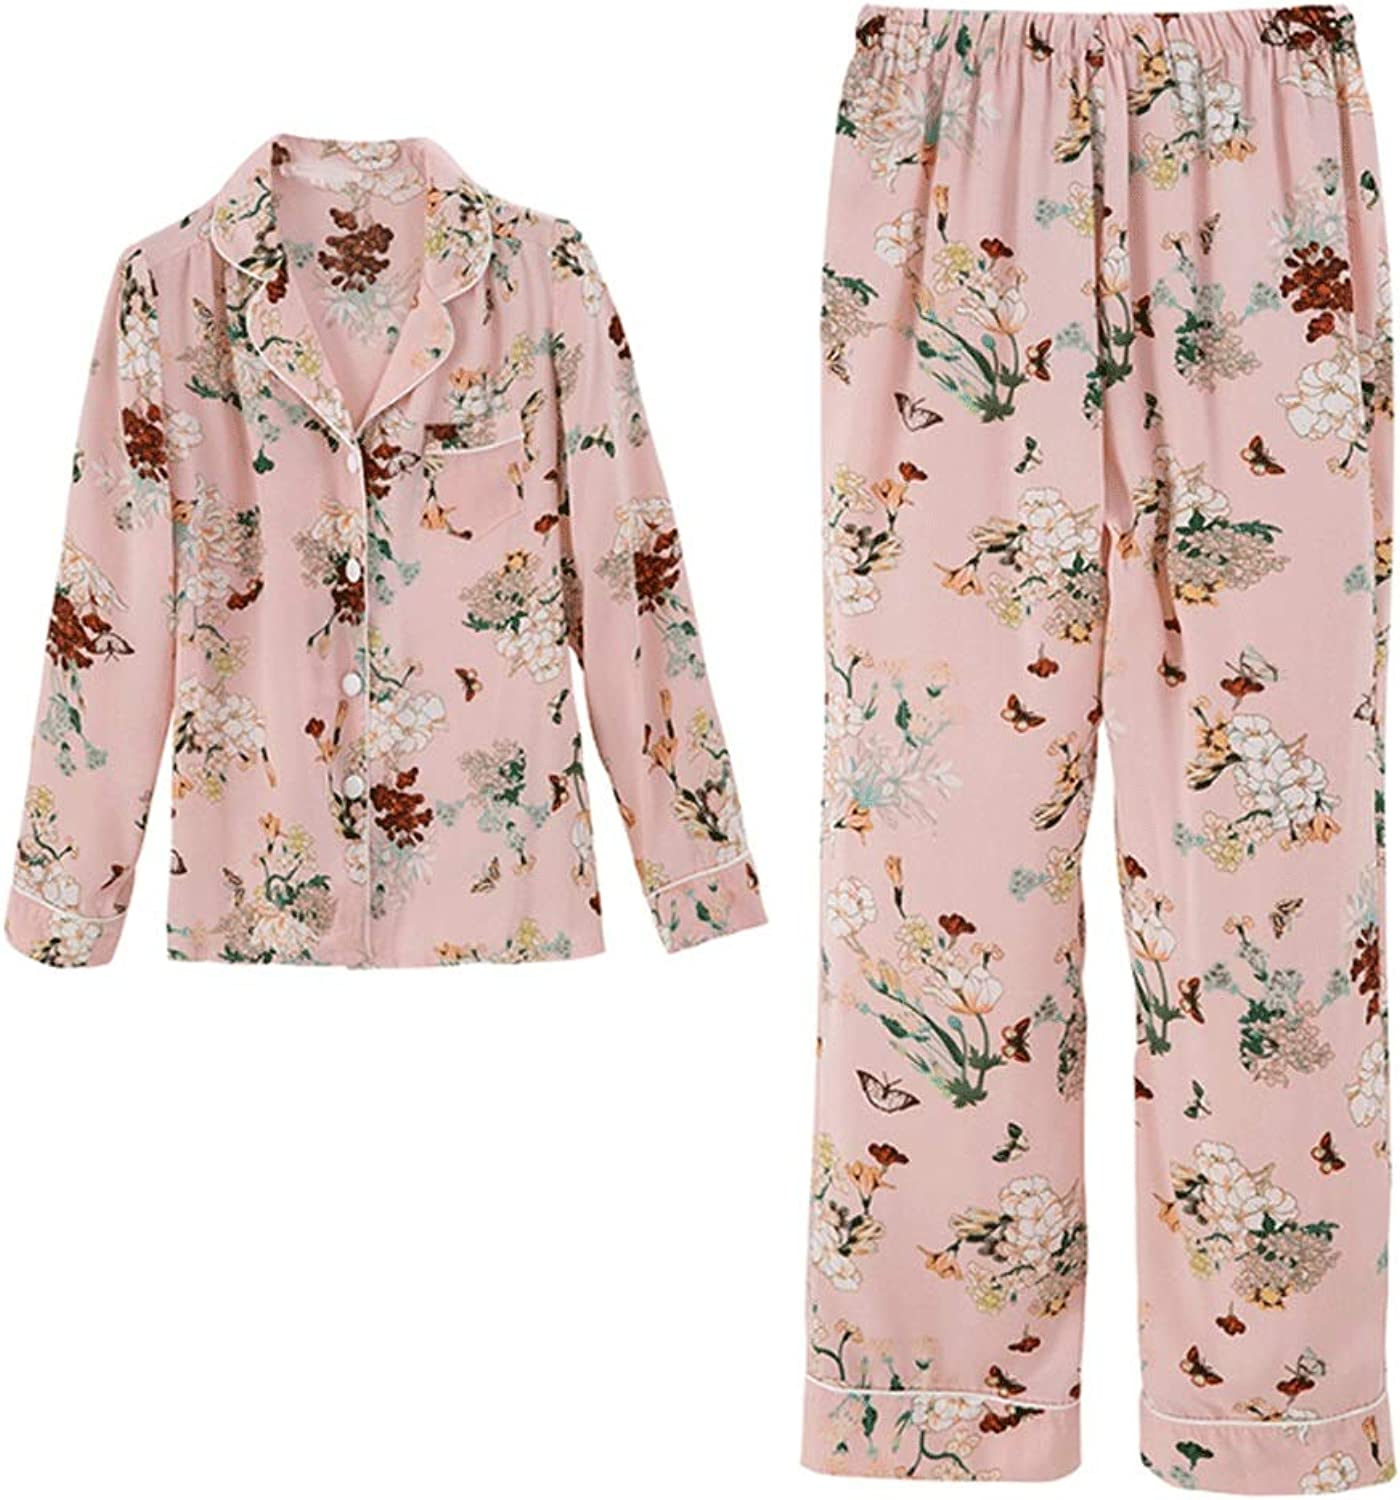 Women's Pajamas Retro Satin TwoPiece Silk Can Be Worn Outside Japanese LongSleeved Pajamas Home Service (color   Pink, Size   M)